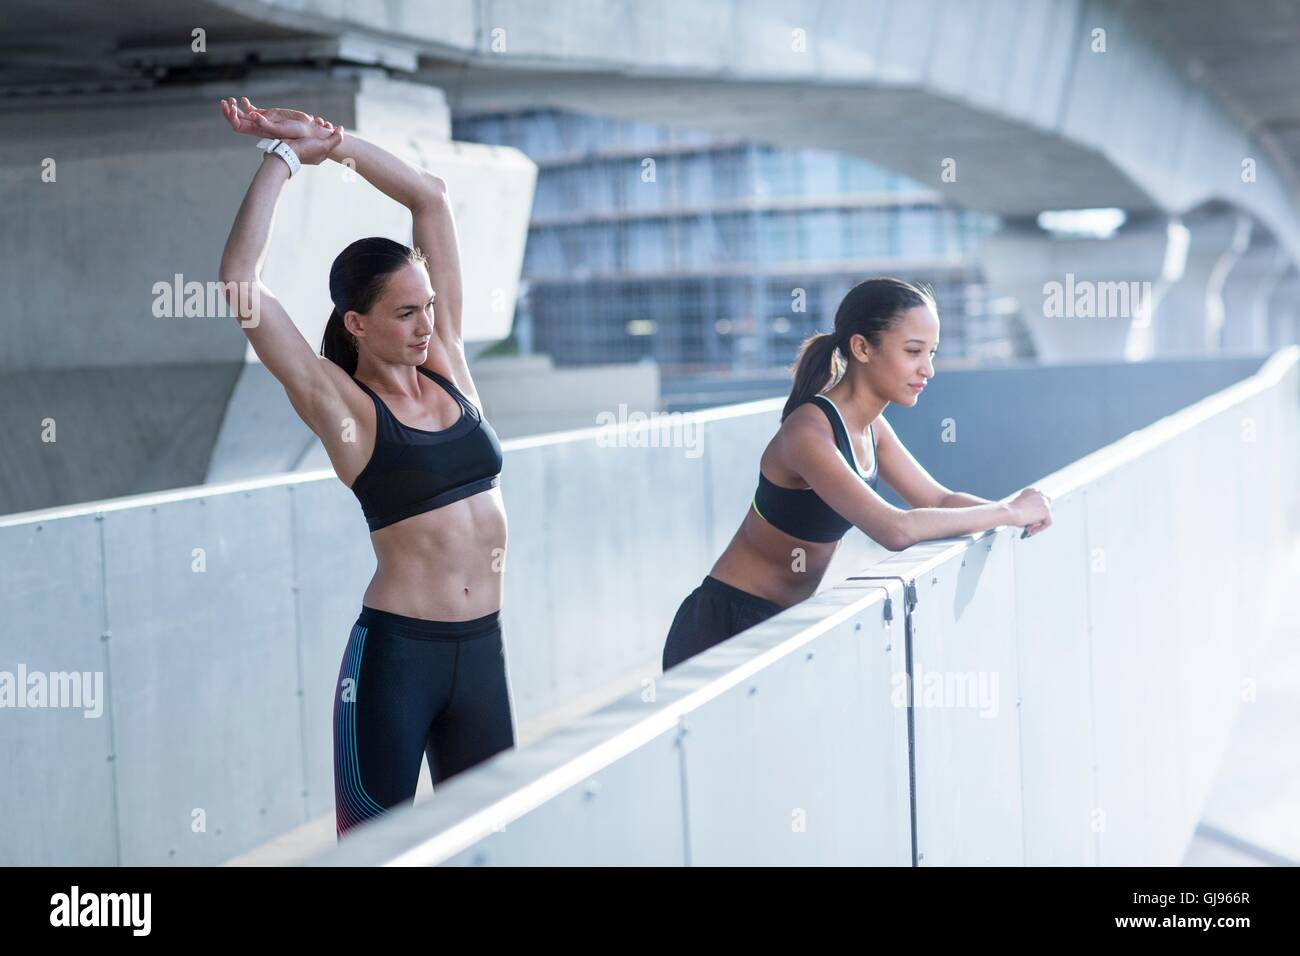 Parution du modèle. Young woman stretching, ami leaning on wall. Photo Stock